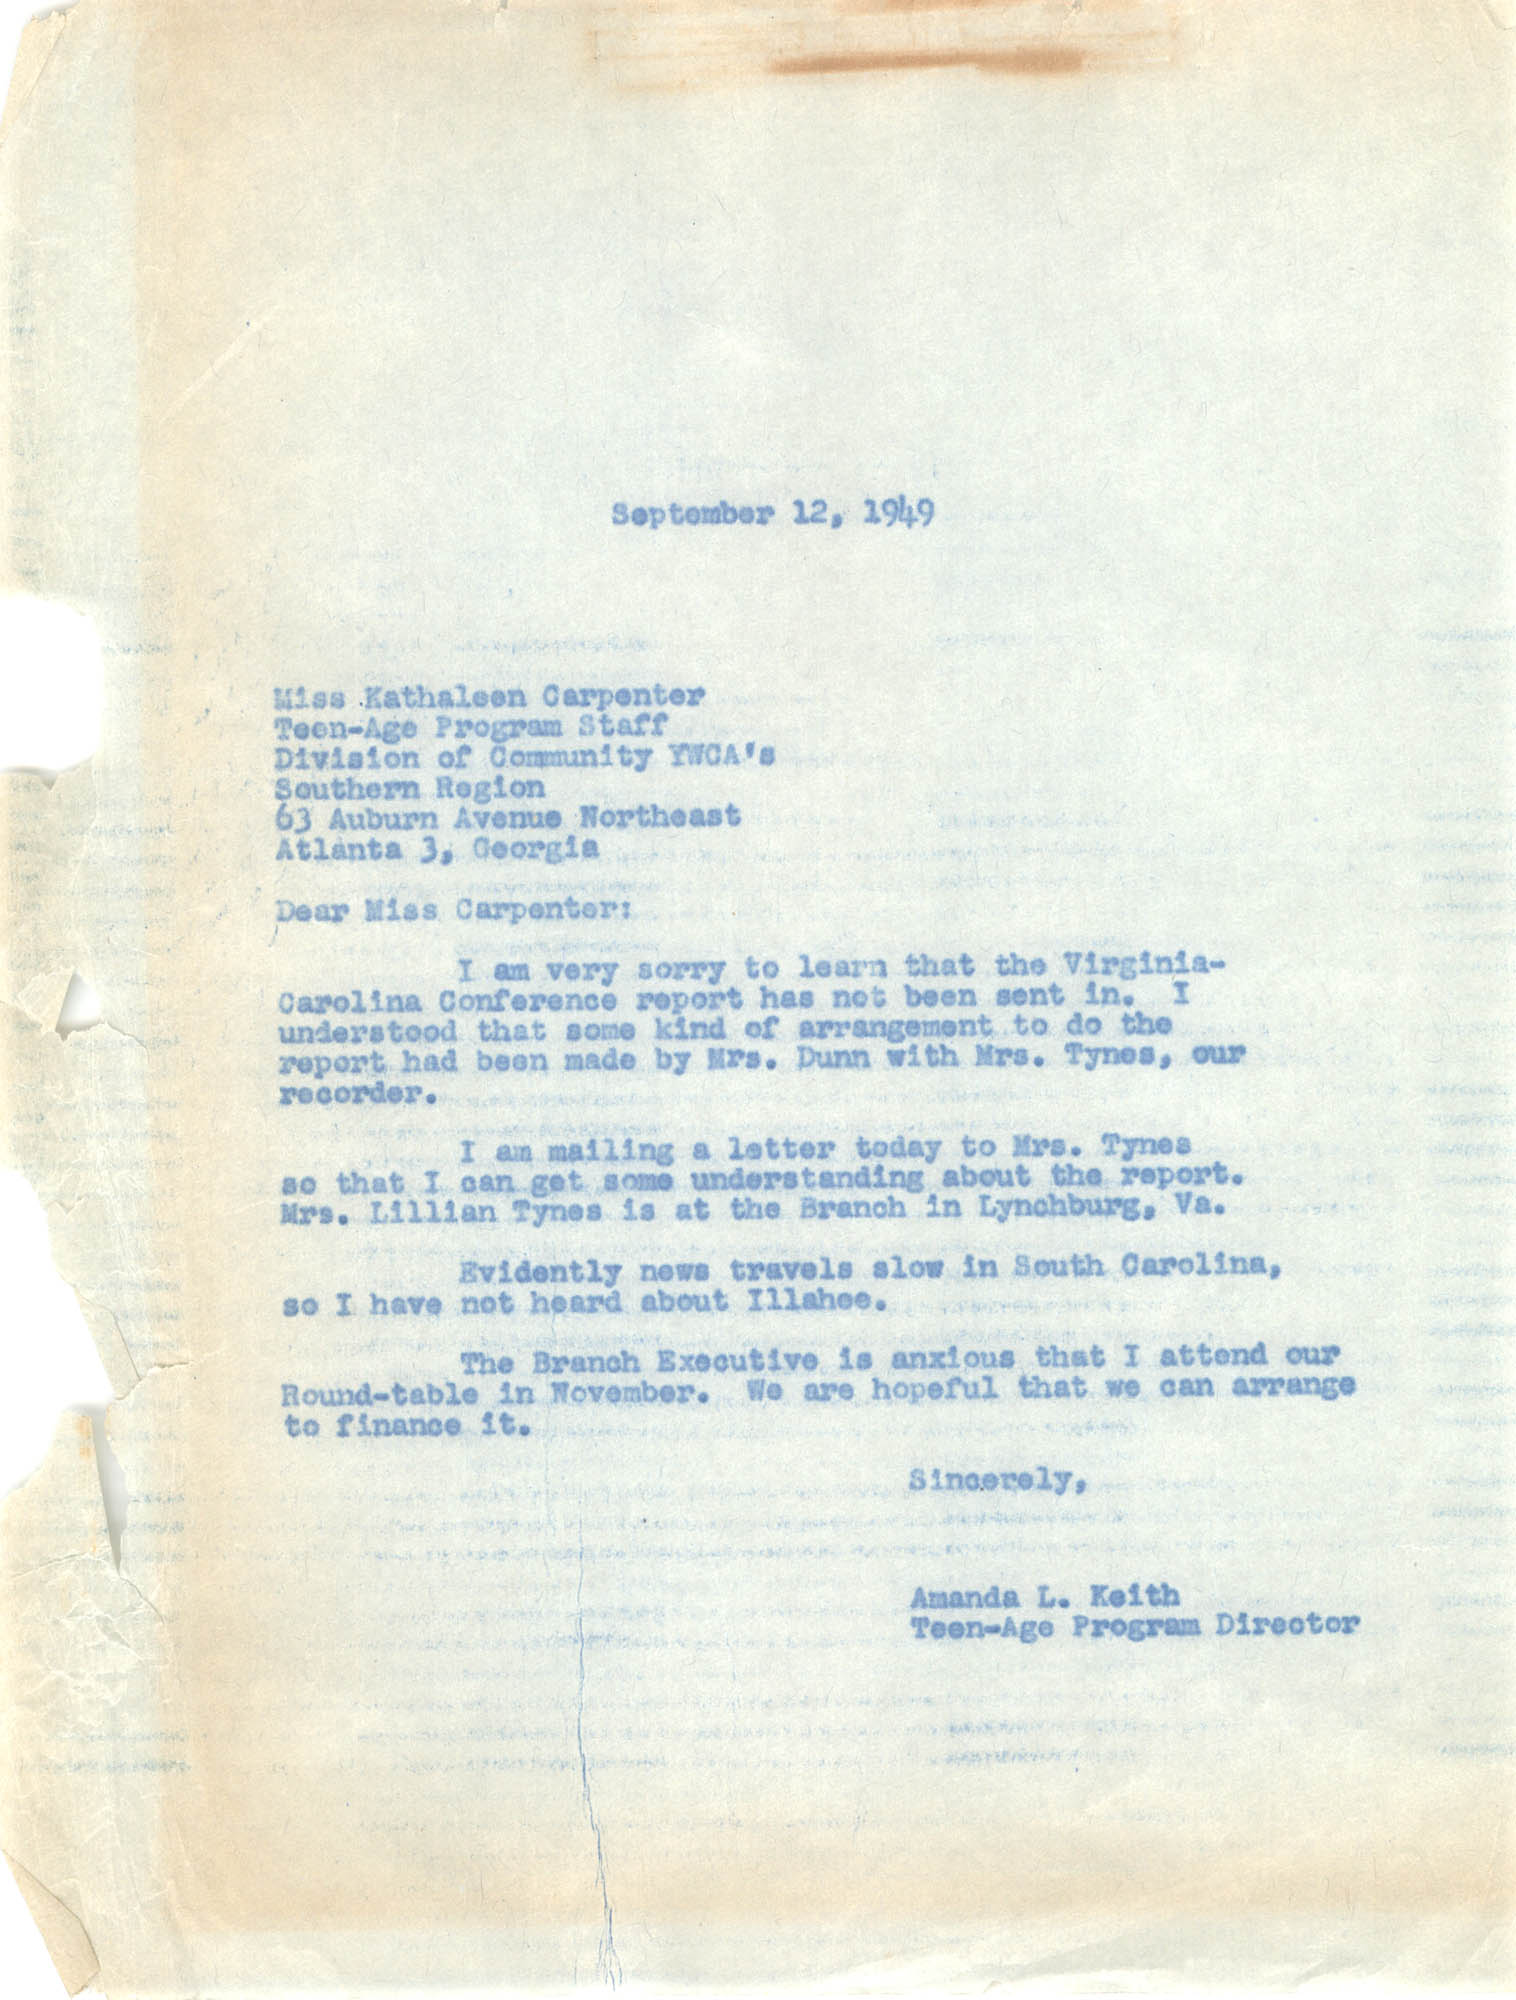 Letter from Amanda Keith to Kathaleen Carpenter, September 12, 1949